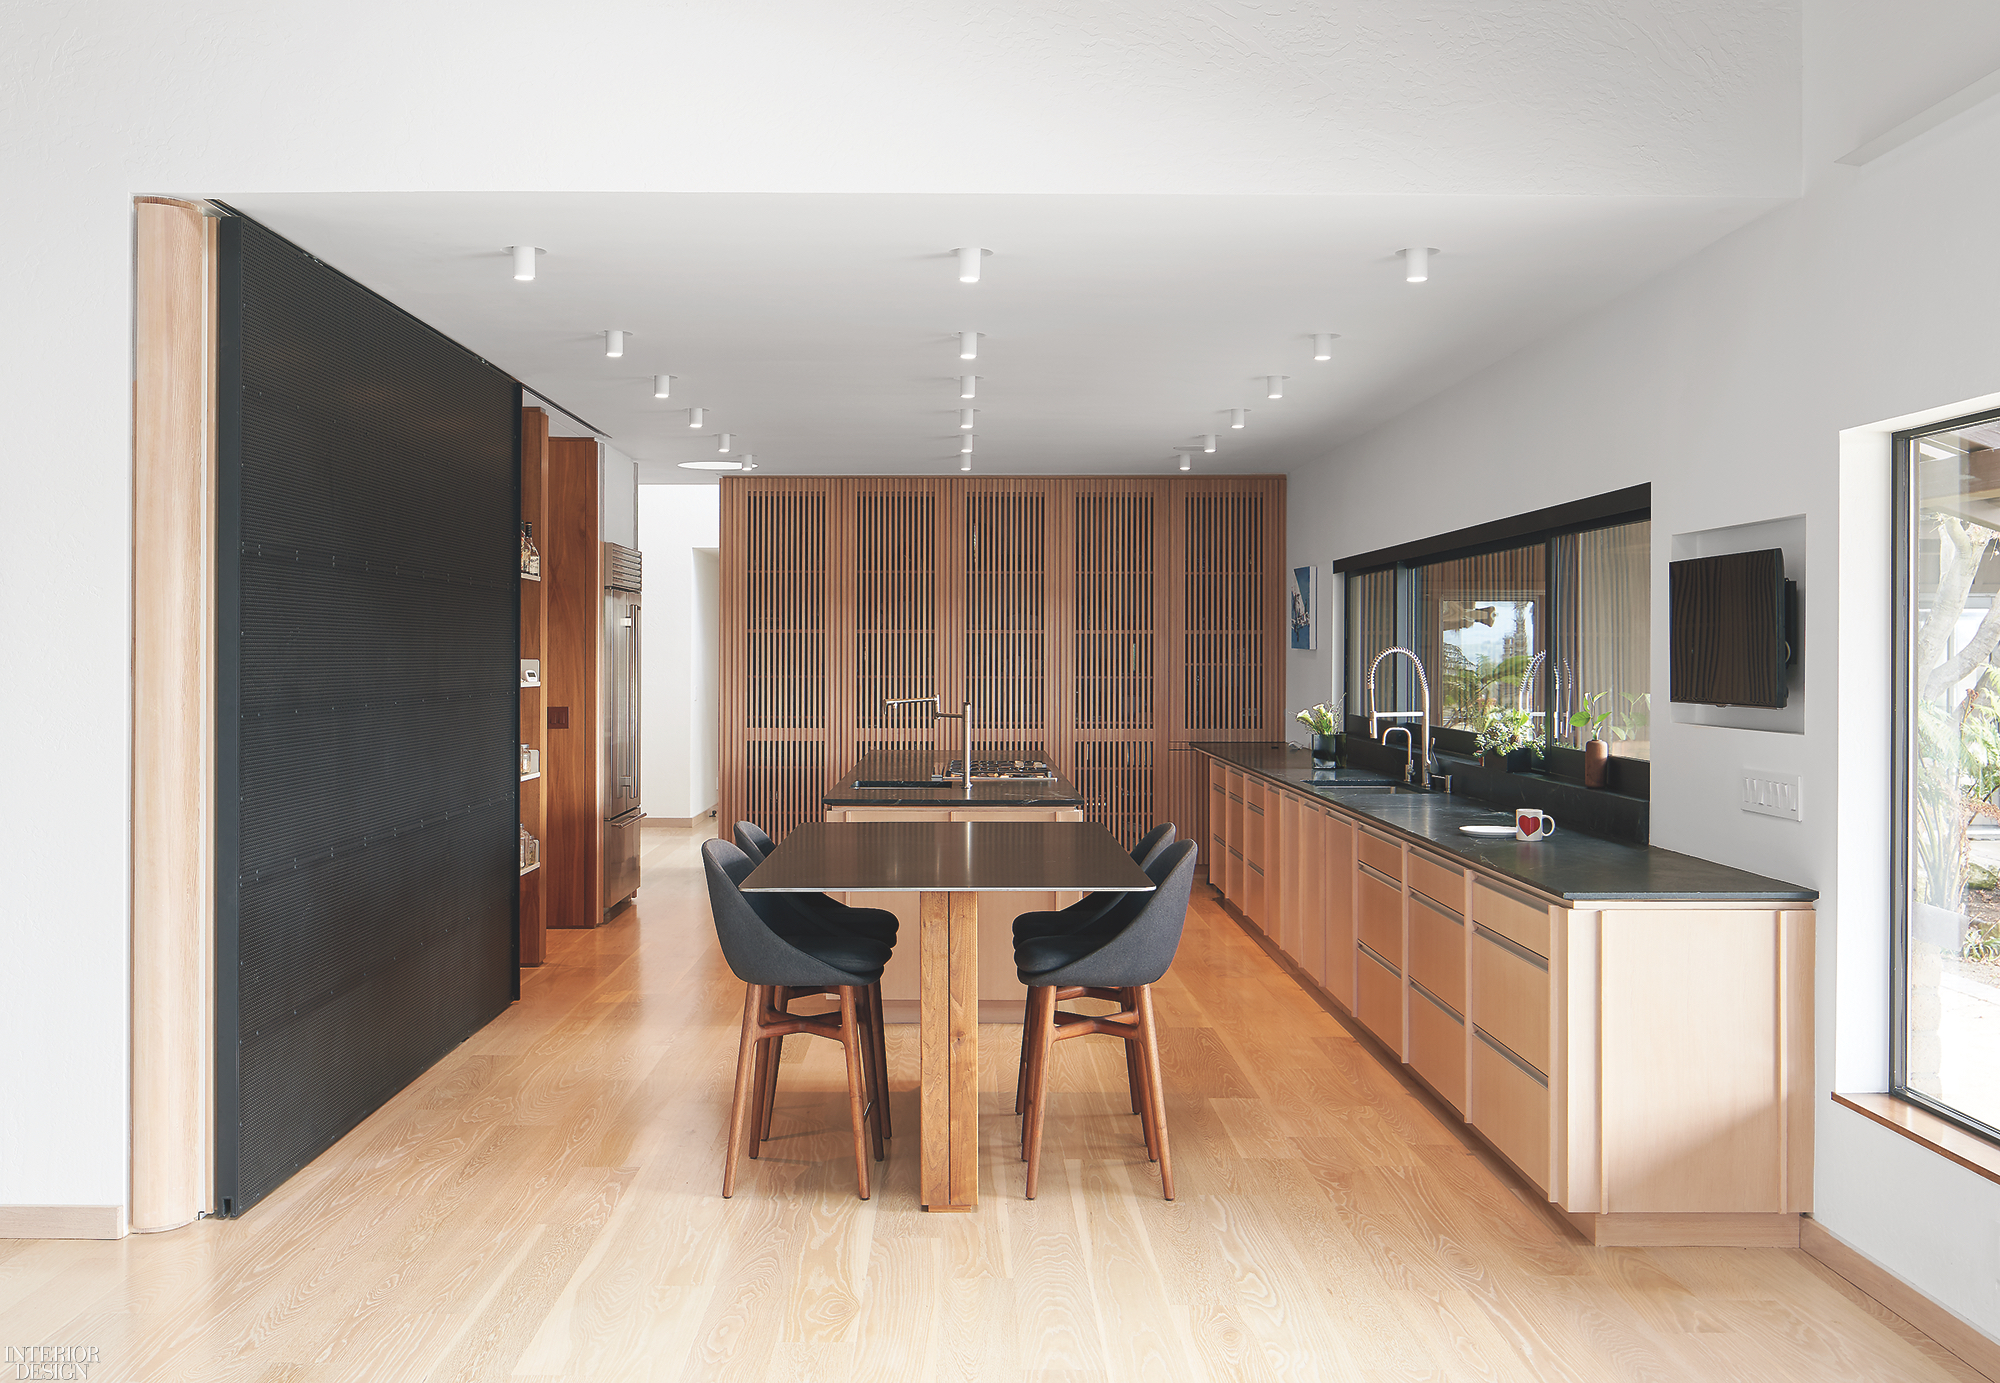 20 Sleek and Modern Kitchens